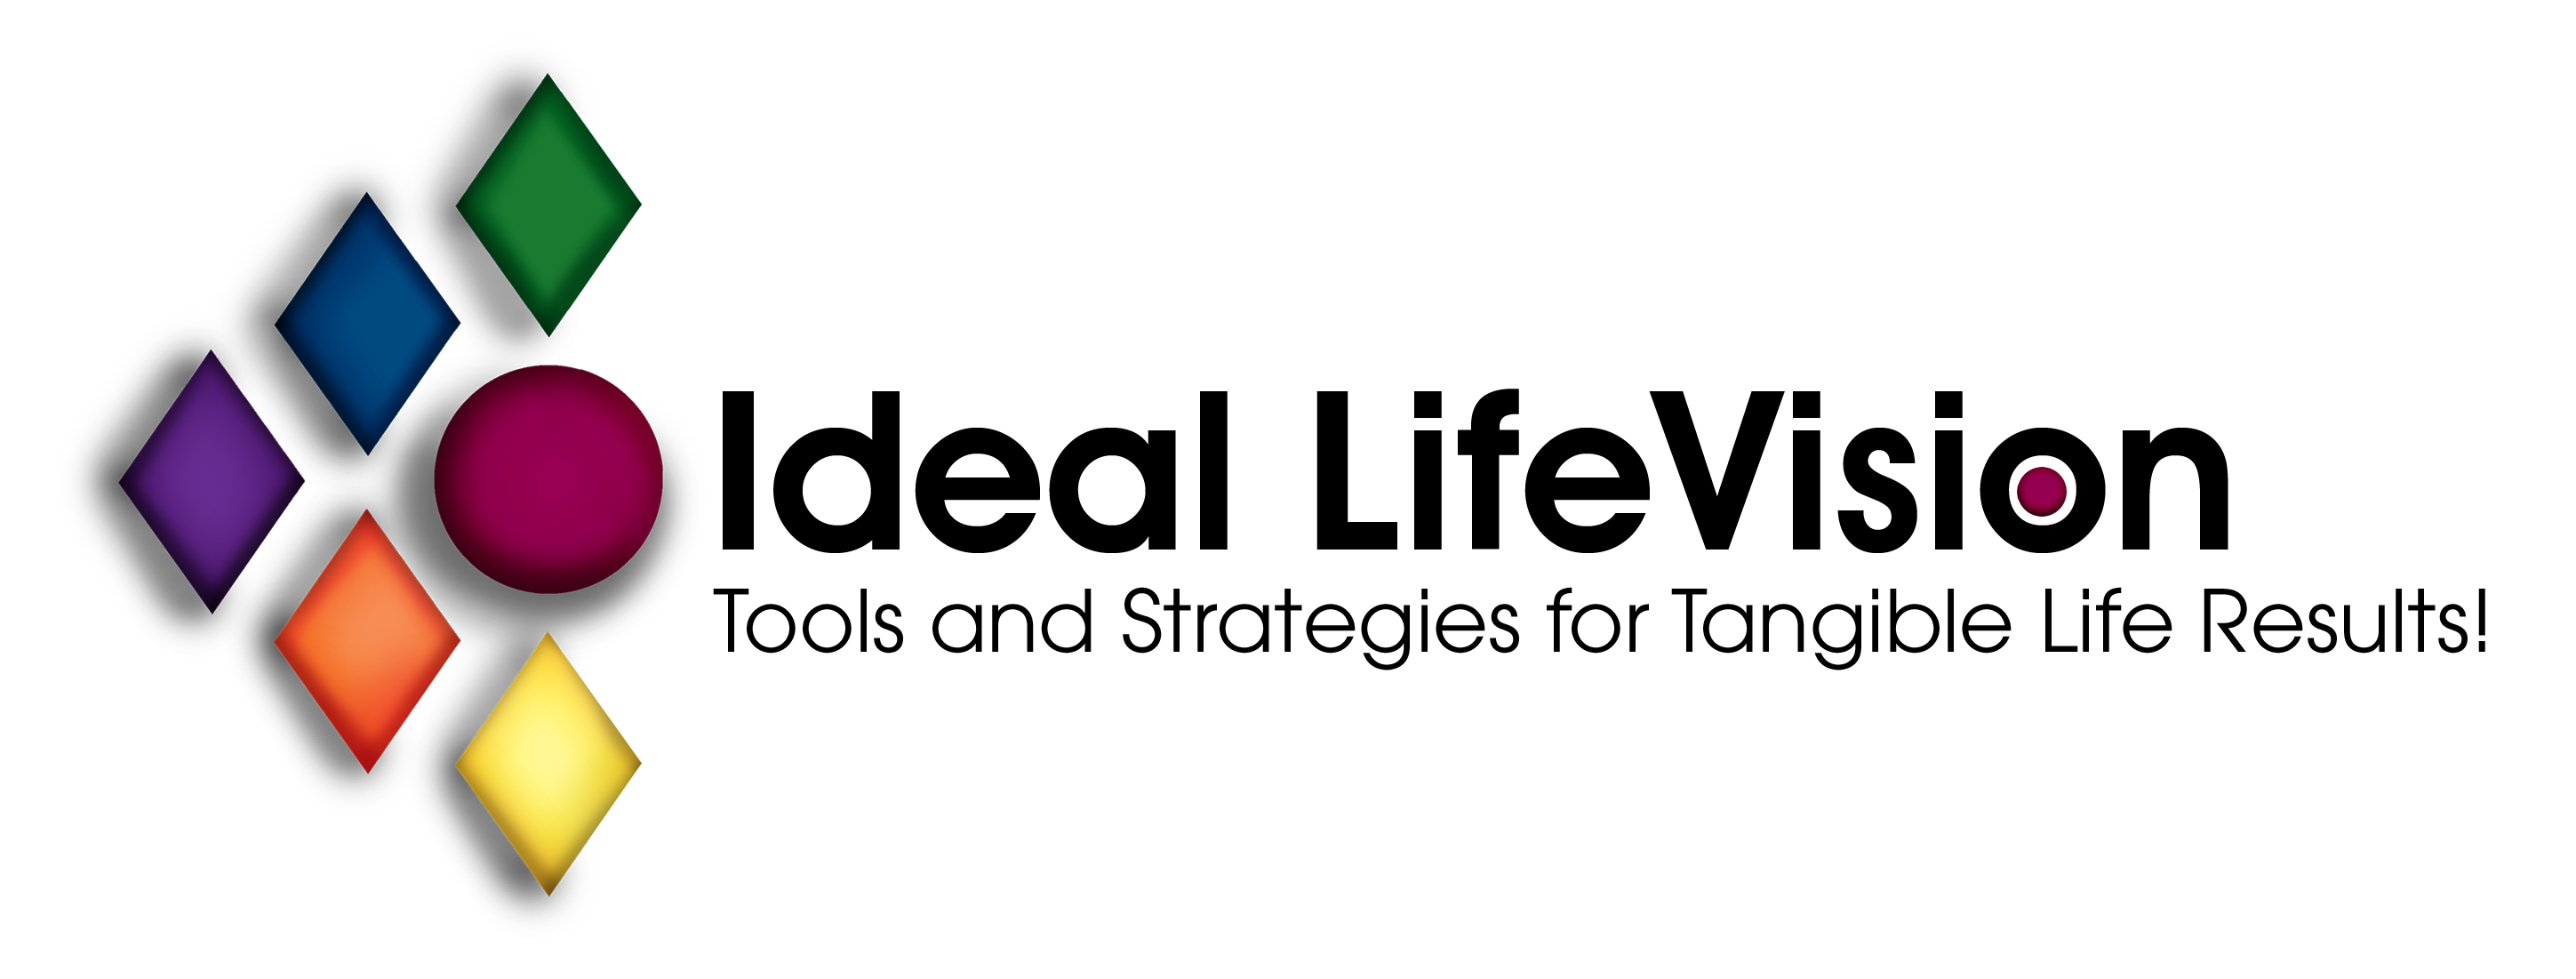 Ideal Life Vision Network Marketing